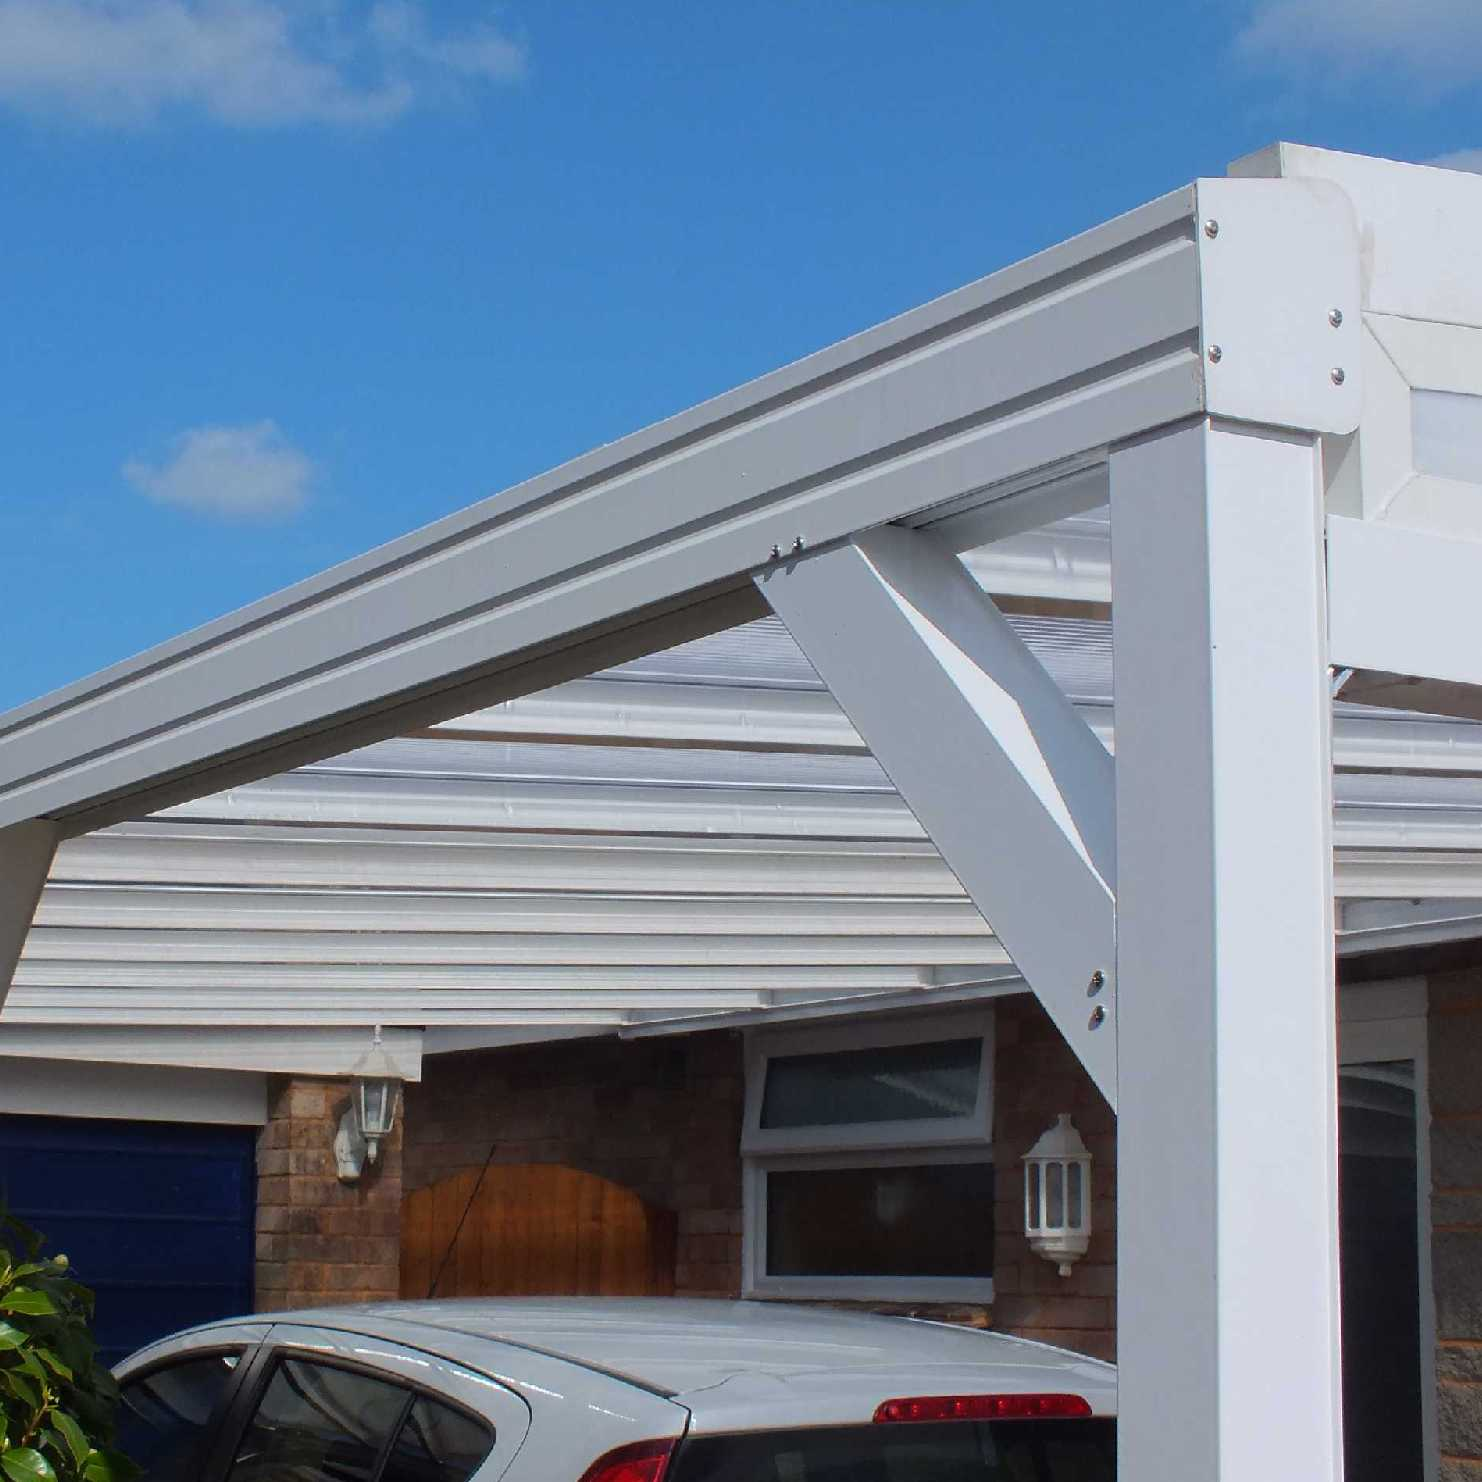 Buy Omega Smart White Lean-To Canopy with 16mm Polycarbonate Glazing - 7.4m (W) x 3.0m (P), (4) Supporting Posts online today